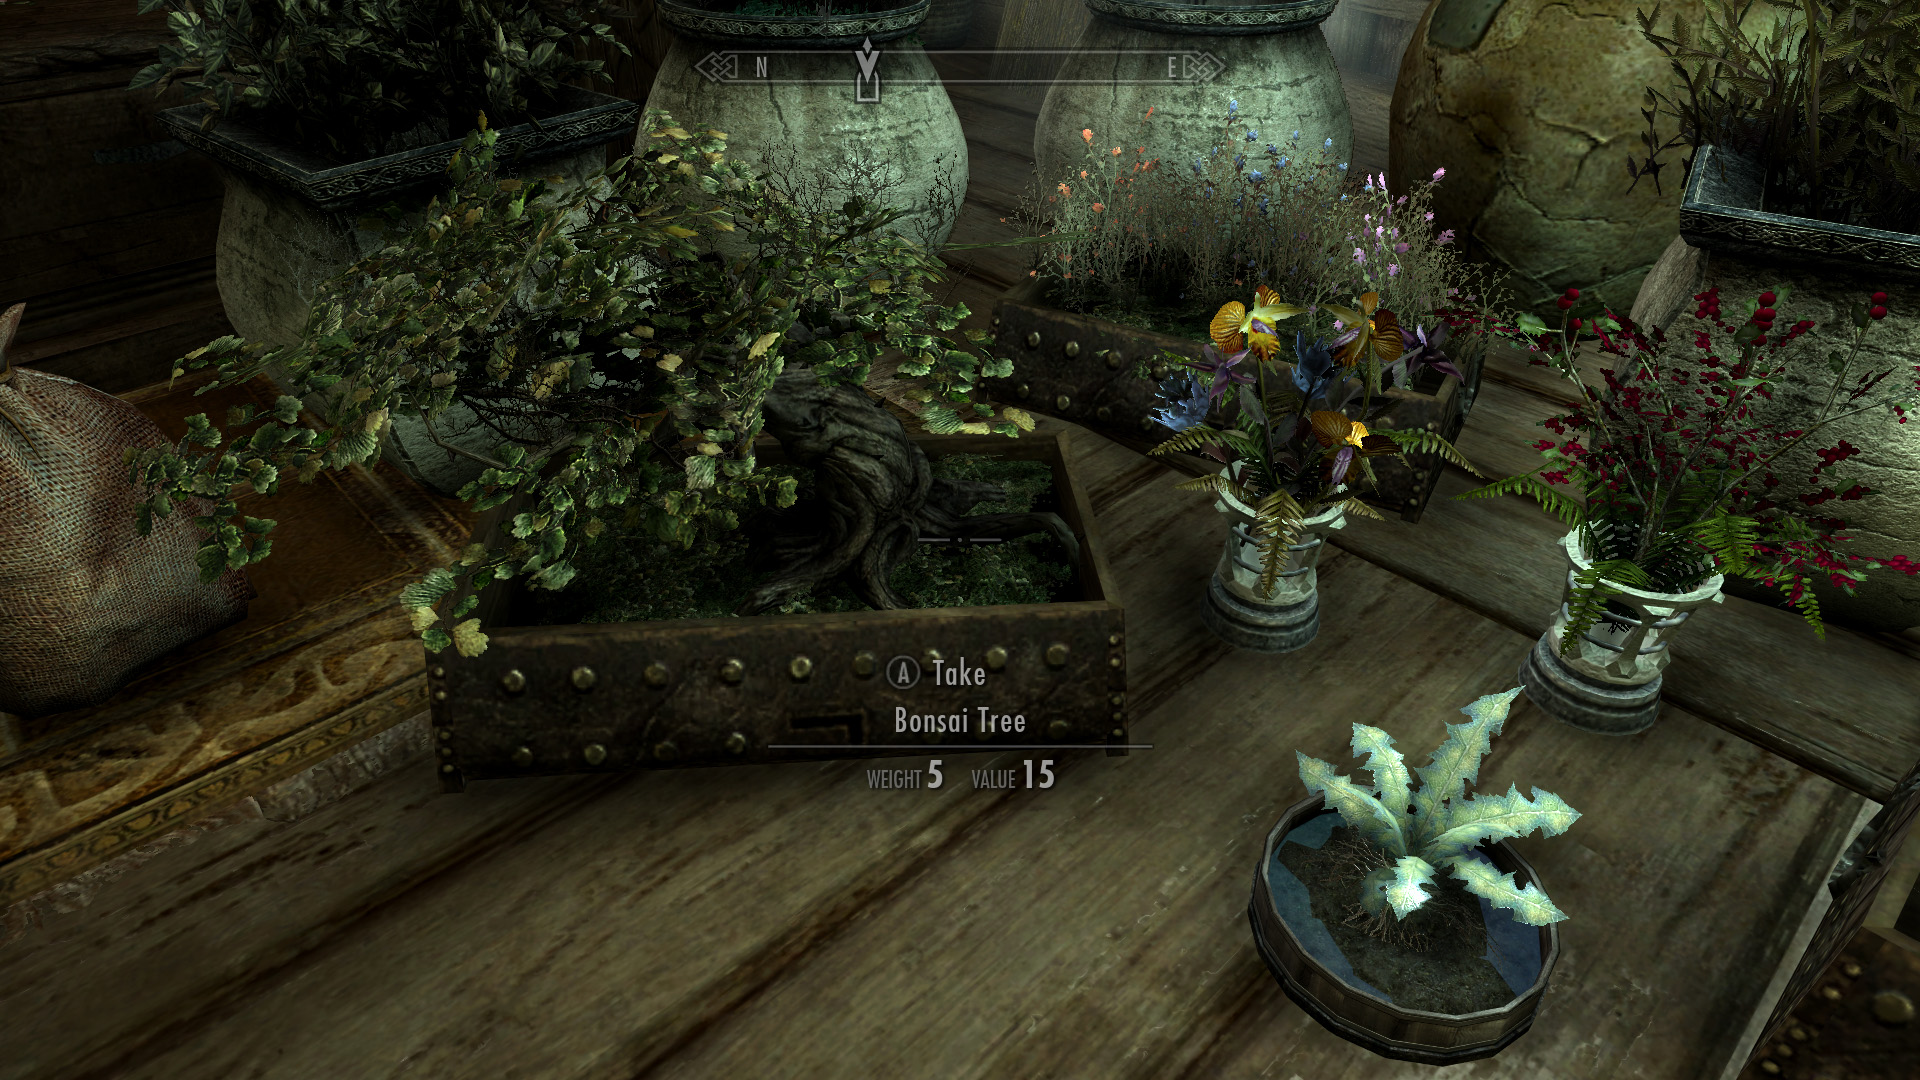 House decorations plants and flowers traduzione for Fallout 4 decorations